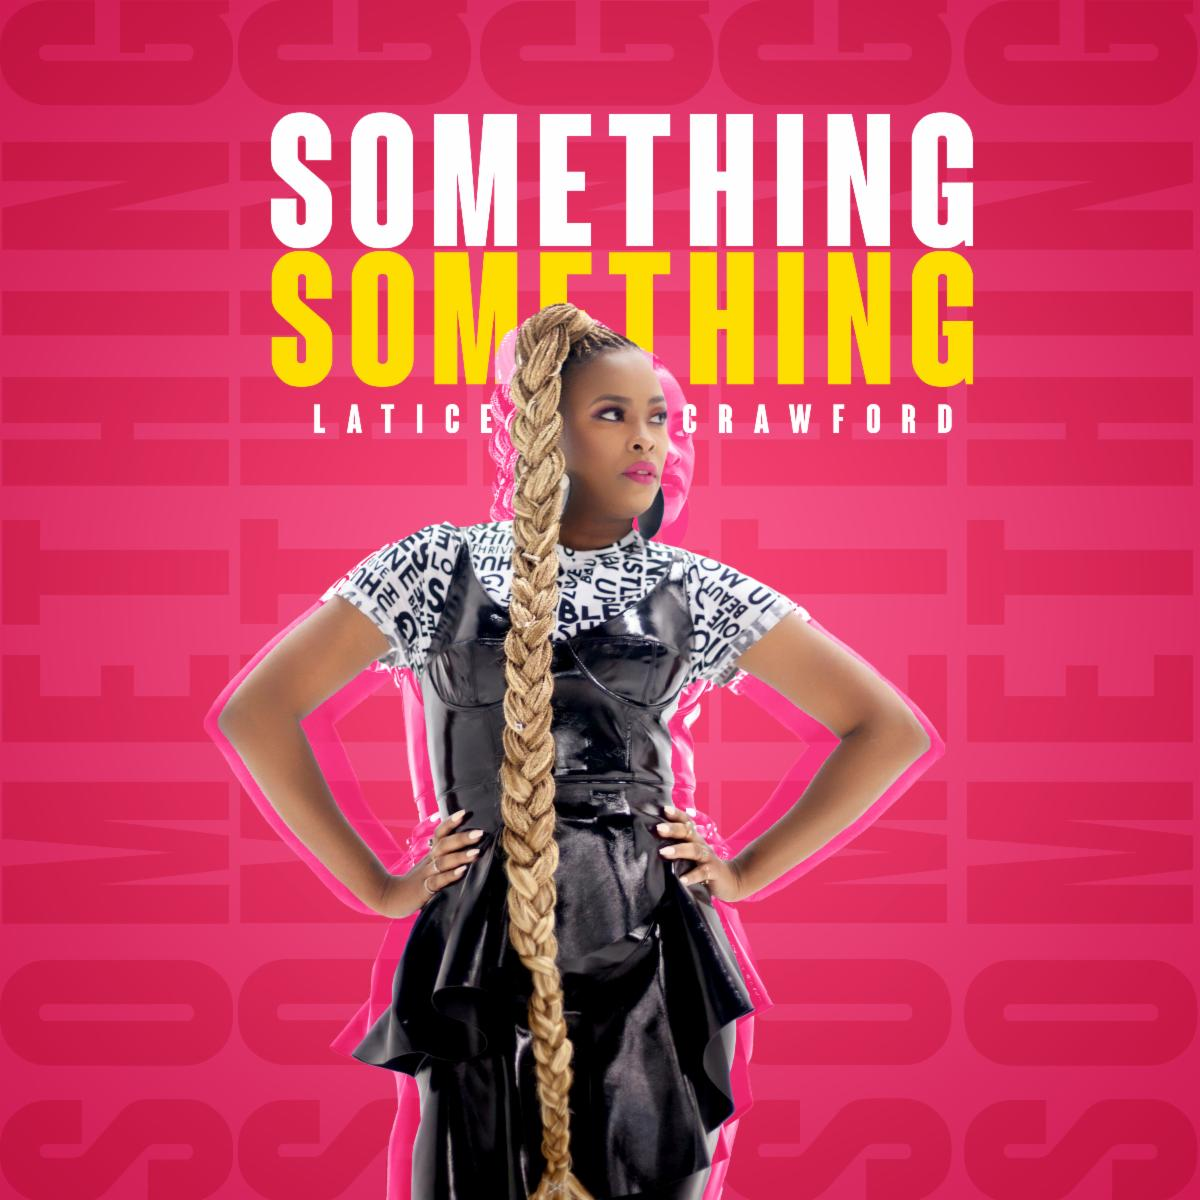 """Music News: Latice Crawford Drops Dual Singles """"Amazing"""" & """"Something Something"""" Available Now!"""